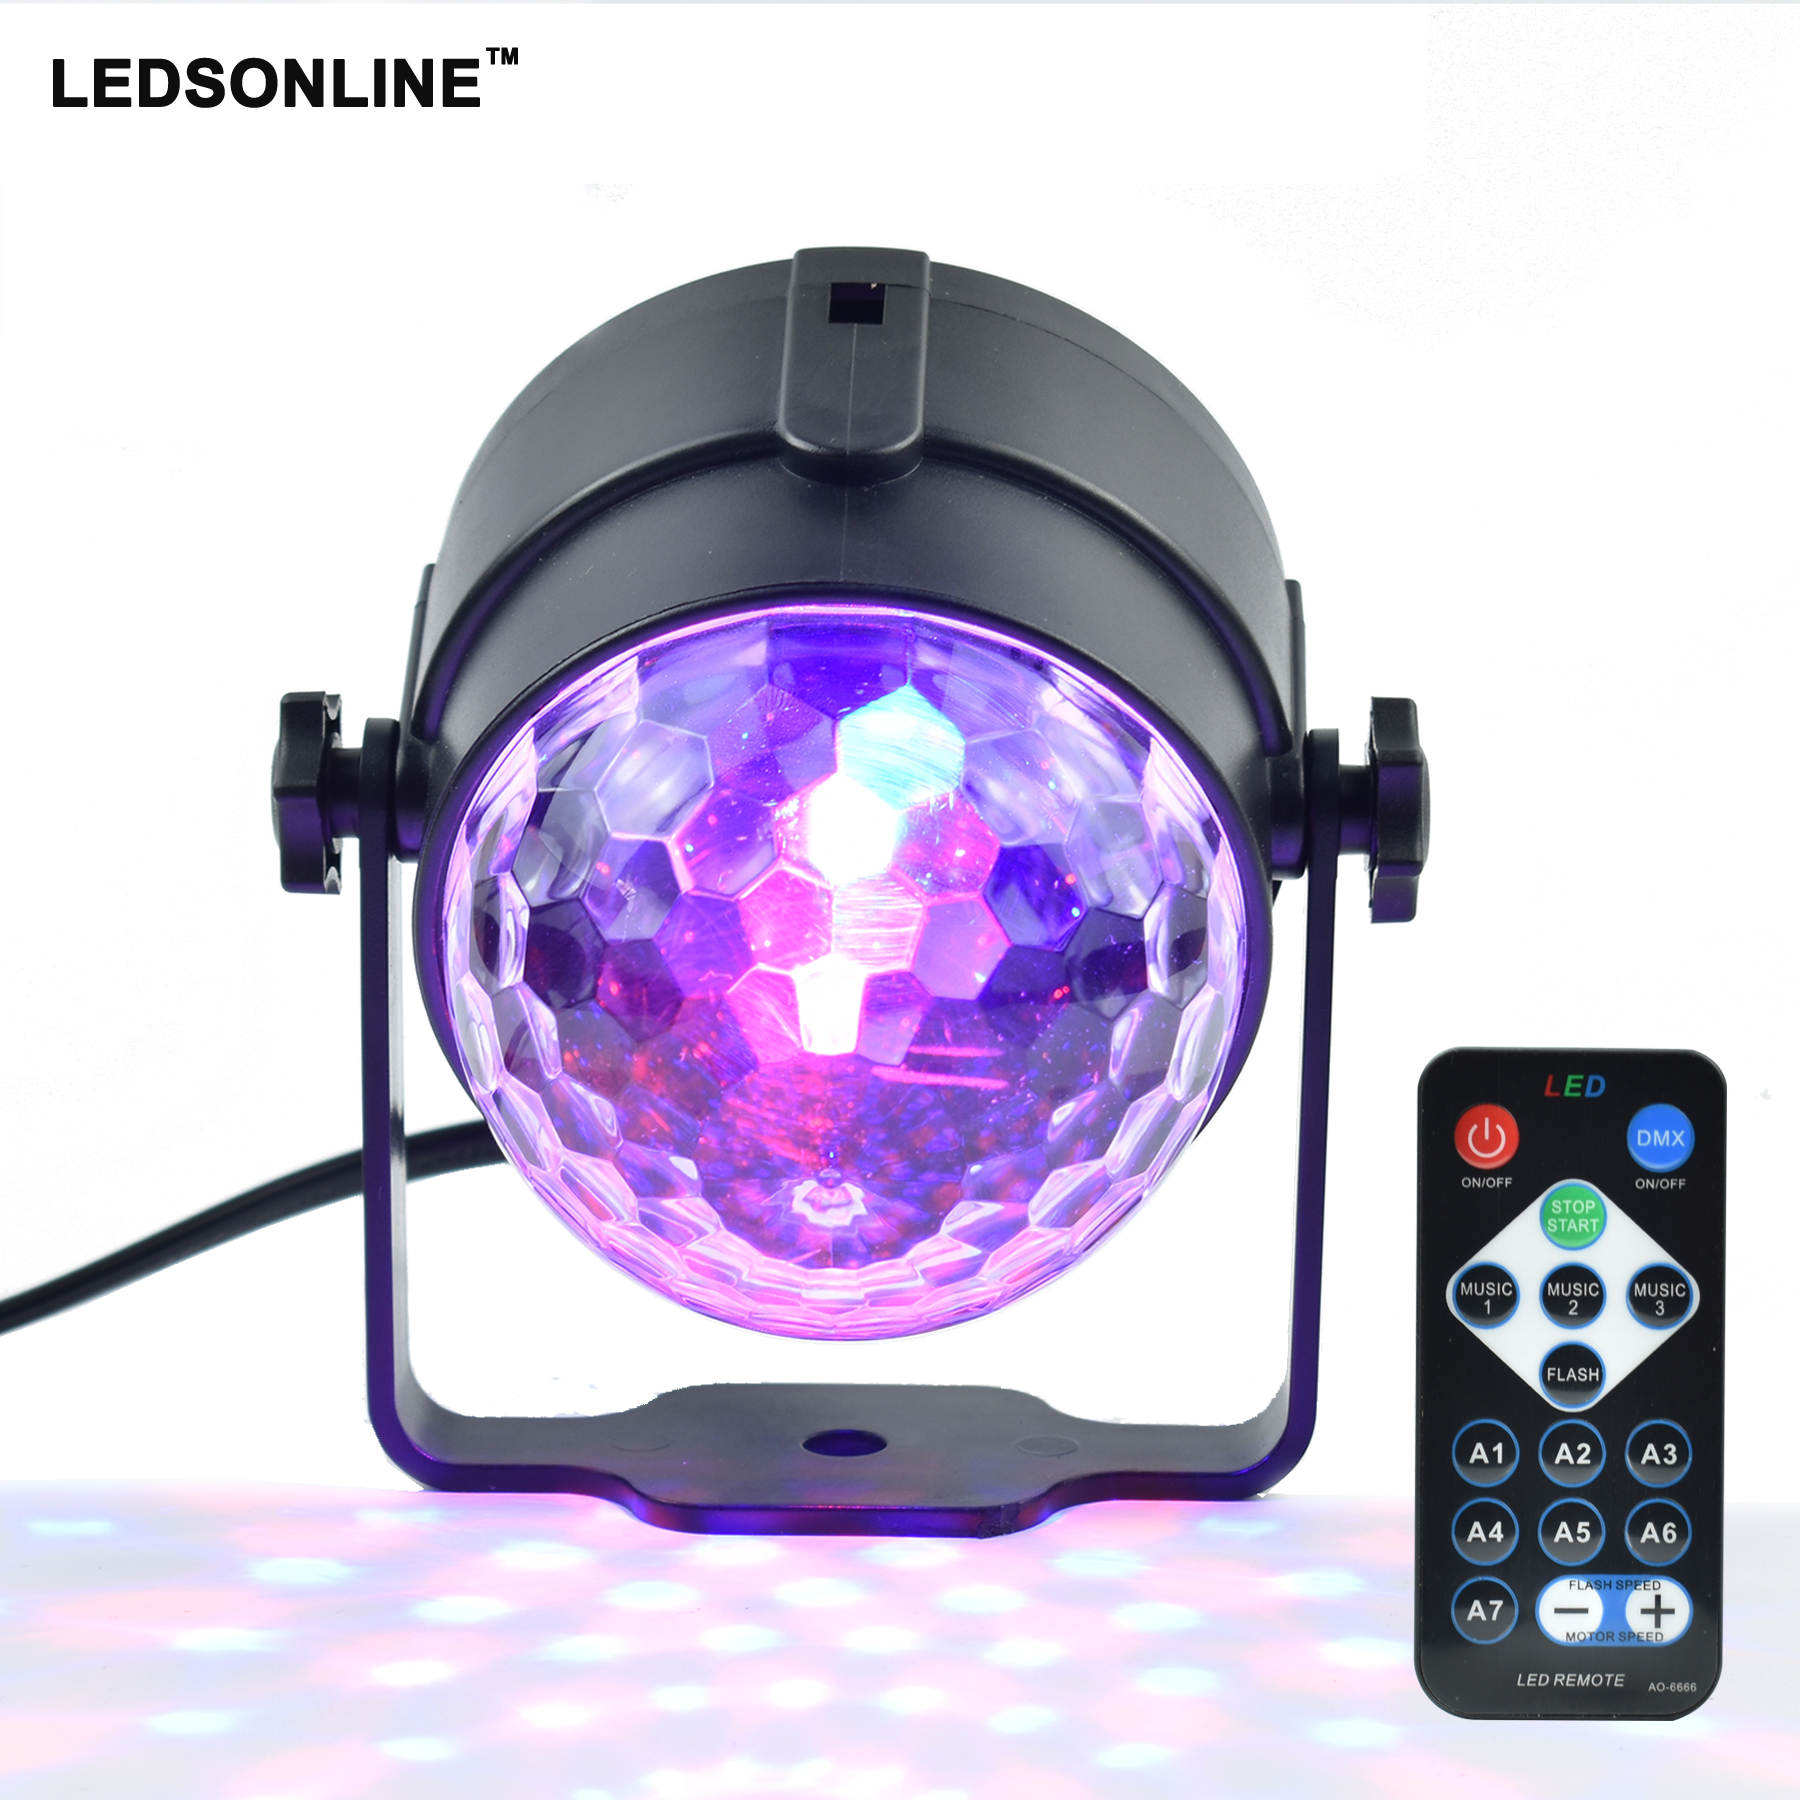 Led Stage Lamp DJ KTV Disco Laser Light Party Lights Sound IR Remote Control Christmas Projector Mini RGB 3W Crystal Magic Ball home entertainment new mini stage lamp beautiful lighting projector 3w led projection lamp low price high quality ktv party lamp